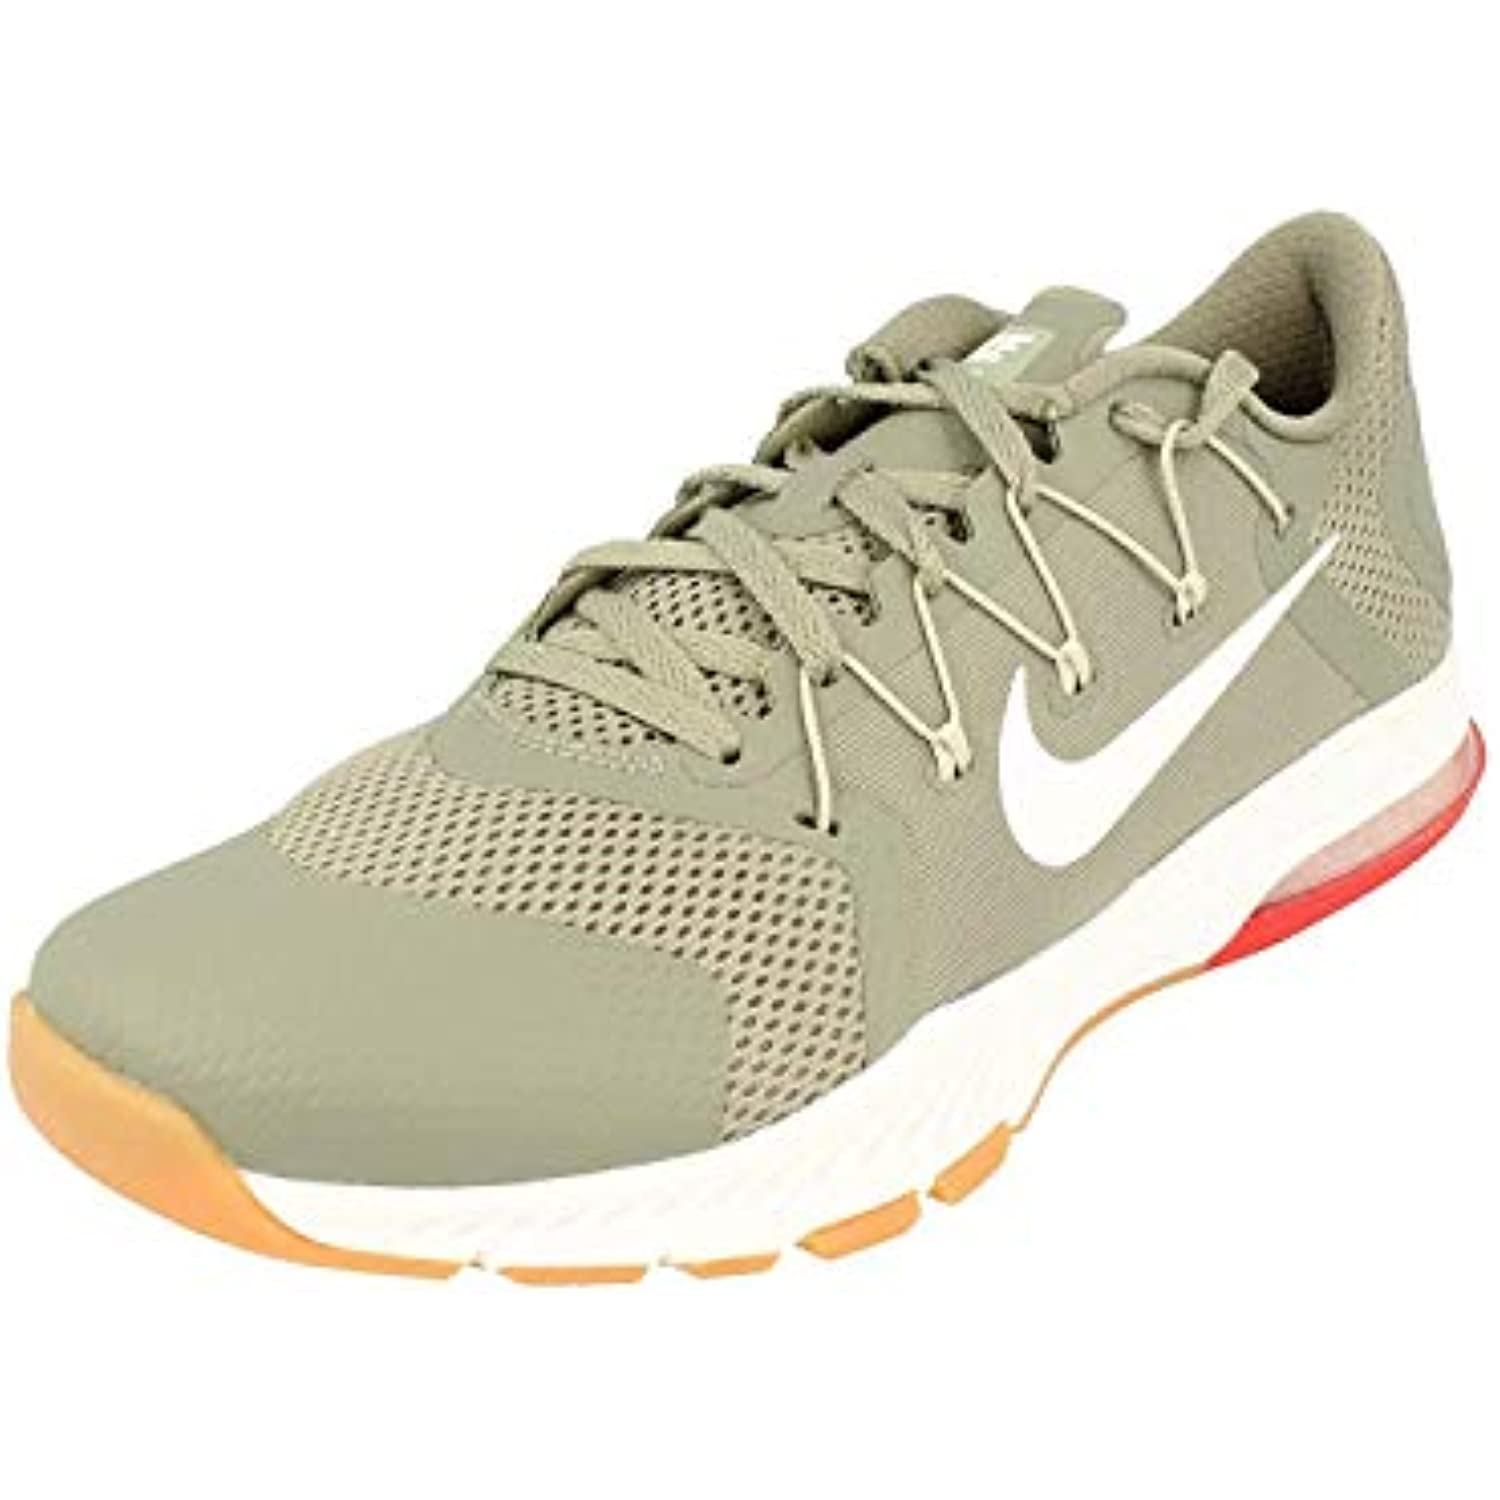 best sneakers 4193e 708e9 NIKE 882119-002, Chaussures Chaussures Chaussures de Sport Homme -  B01NALLNVE - 1c62c0